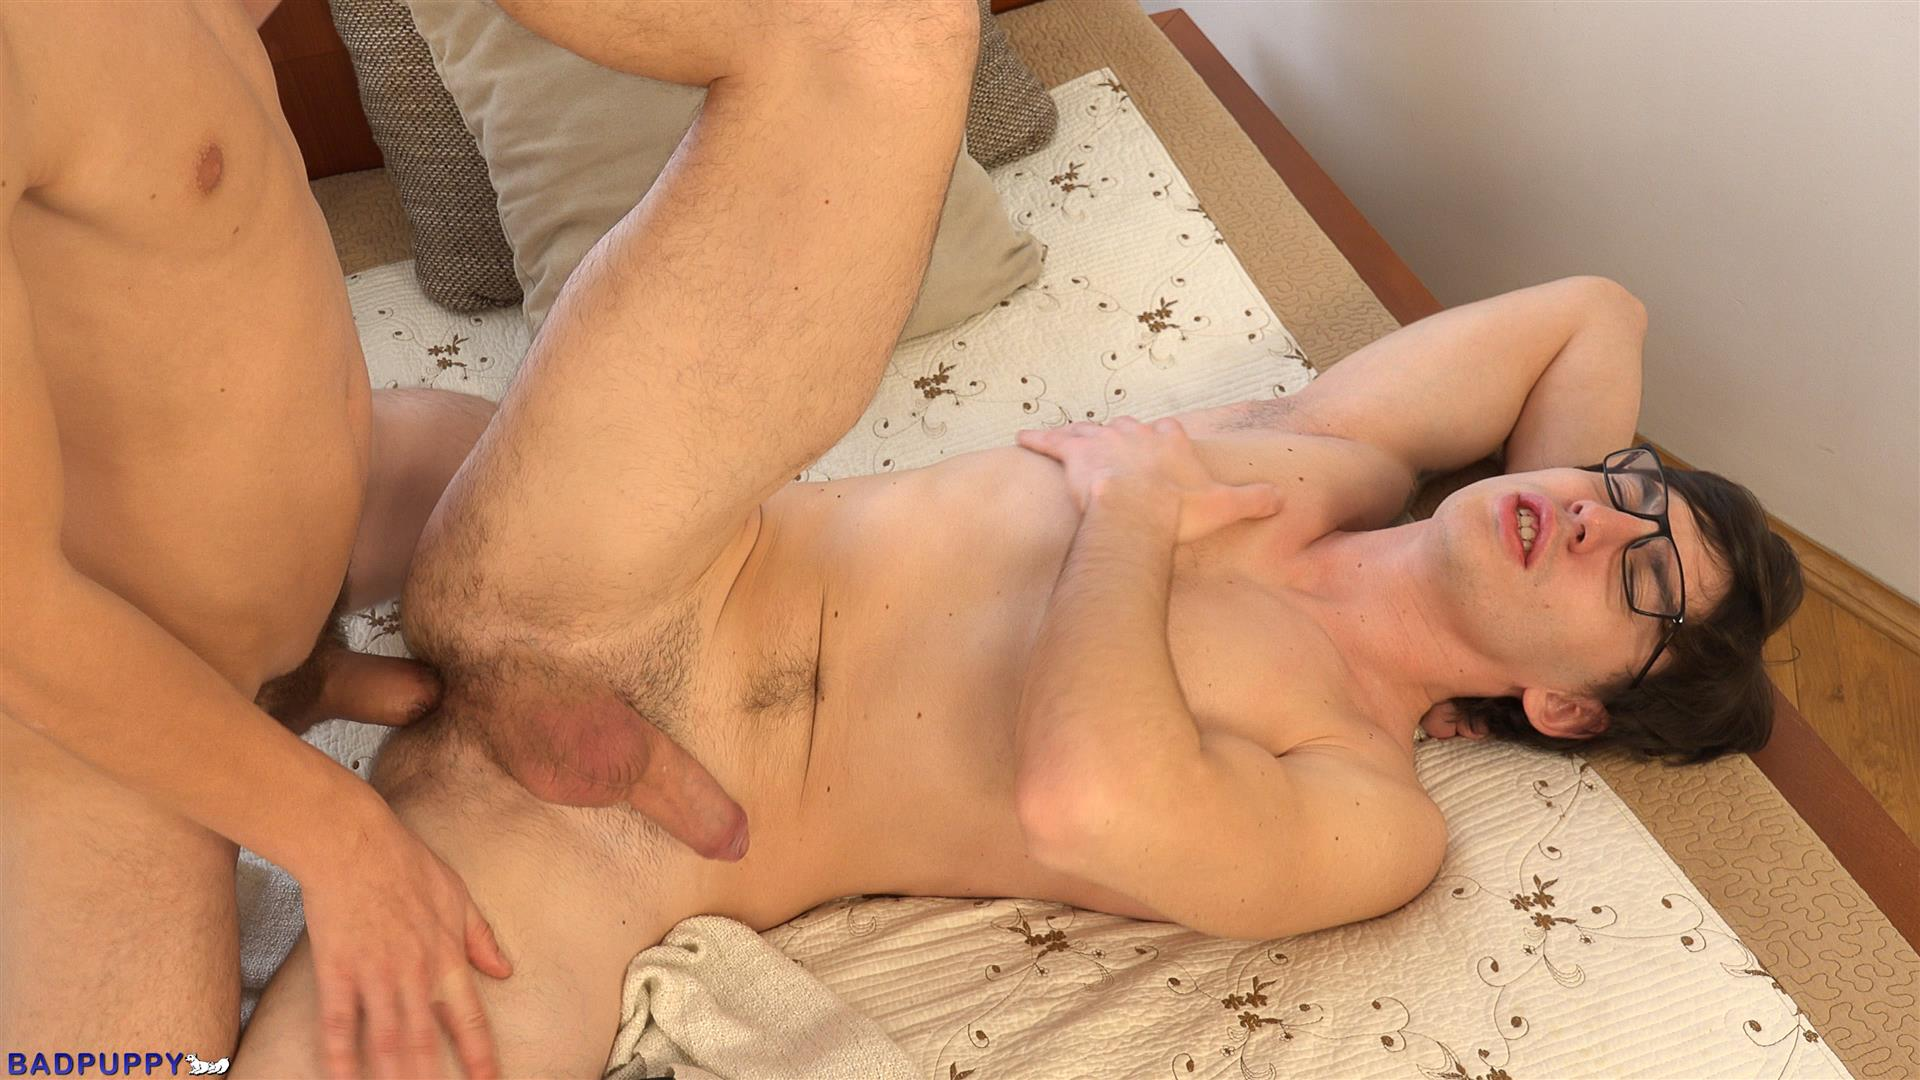 Badpuppy Petr Cisler and Roco Rita Hairy Ass Twinks Bareback Amateur Gay Porn 25 Nerdy Twink Gets Fucked With A Big Uncut Dick In His Hairy Ass